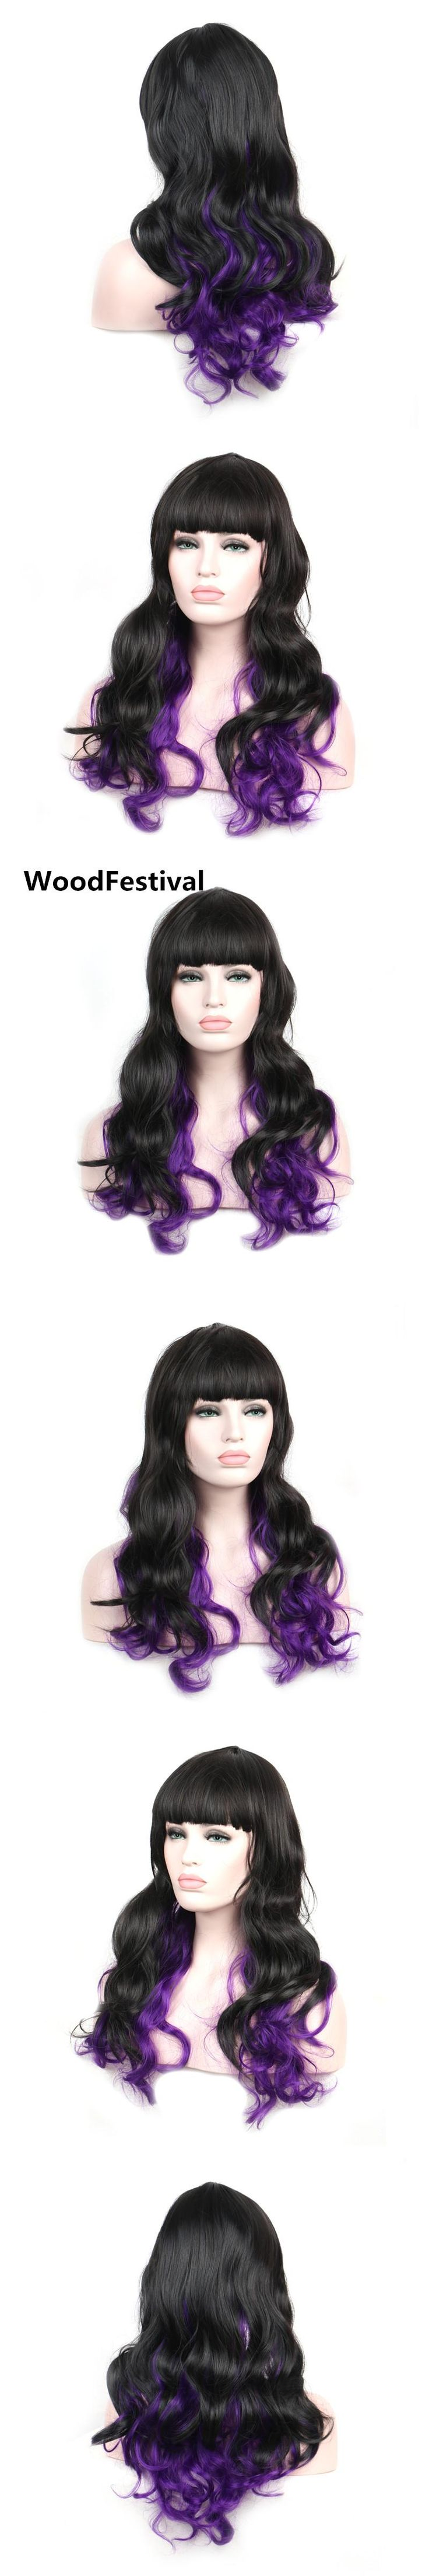 WoodFestival women black purple wig cosplay long synthetic wigs with bangs wavy hair heat resistant